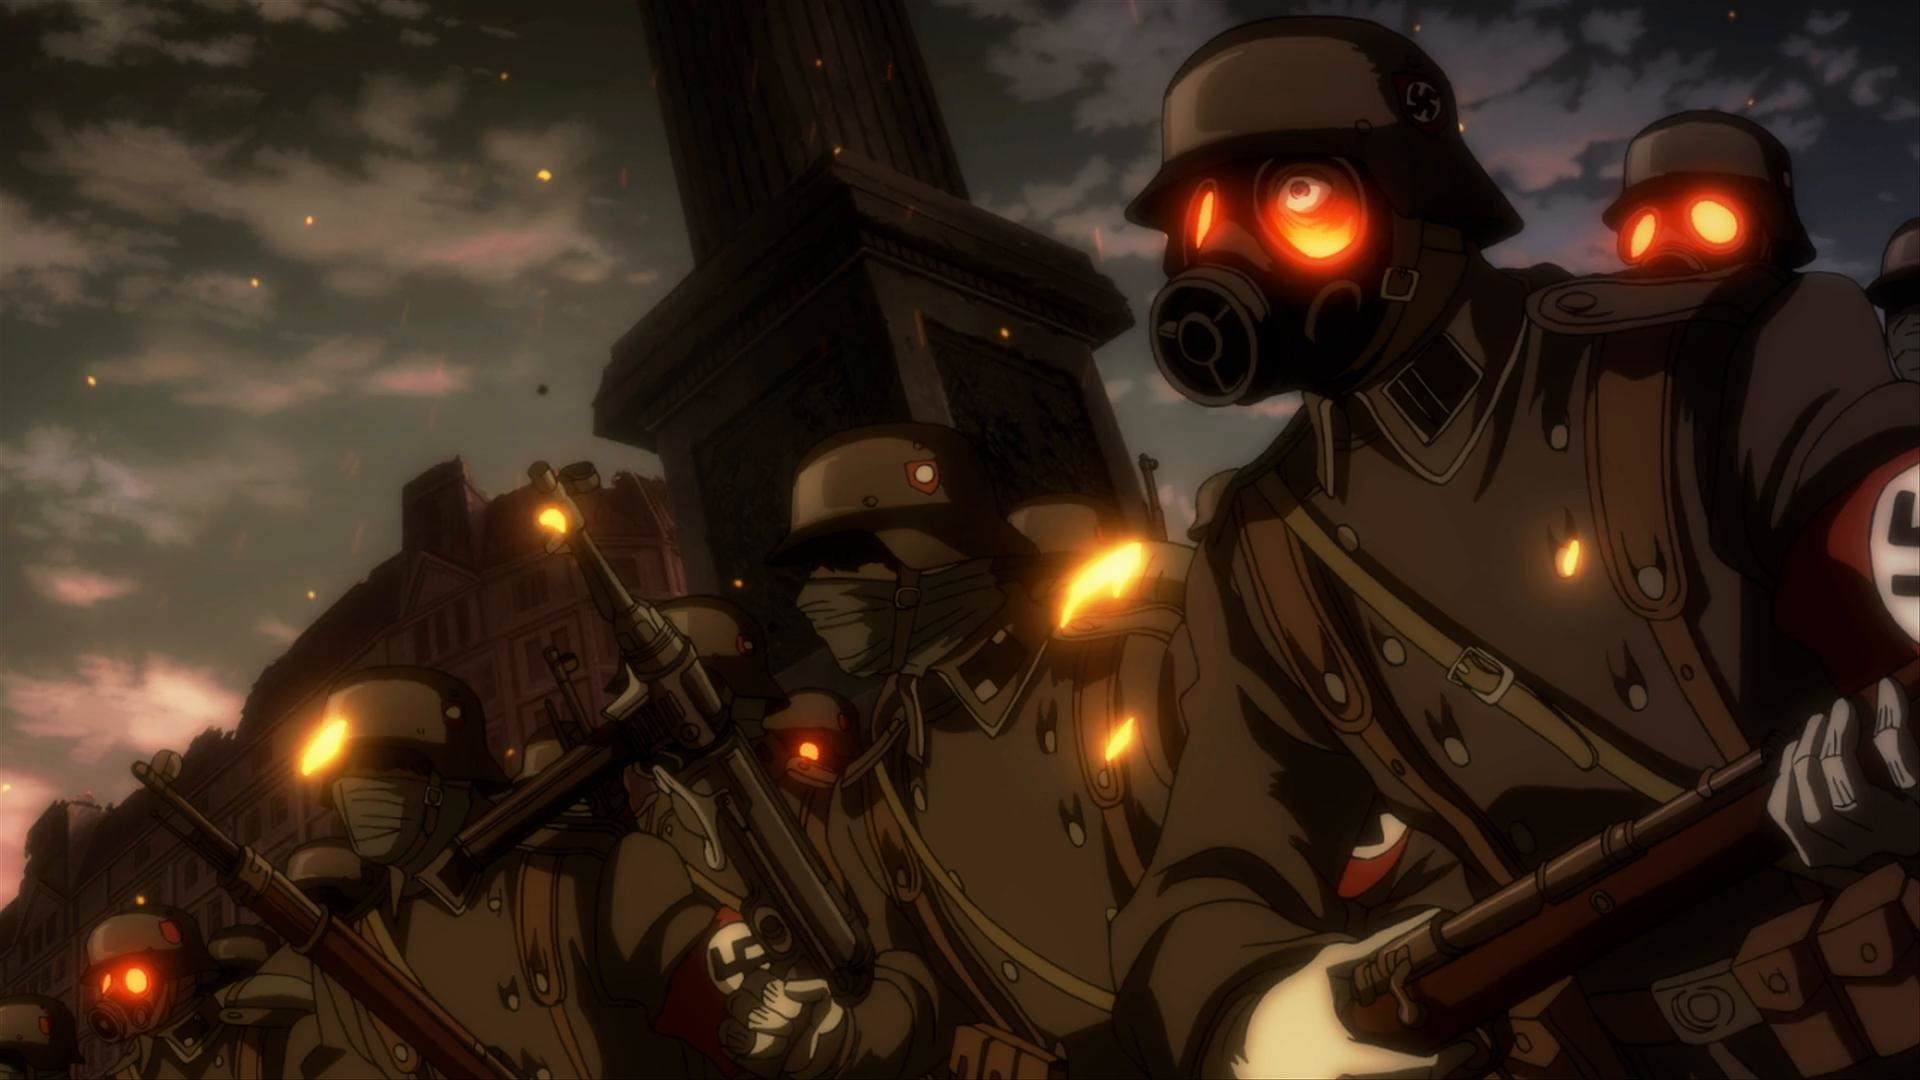 Res: 1920x1080, ... Hellsing Ultimate Wallpaper HQ ...